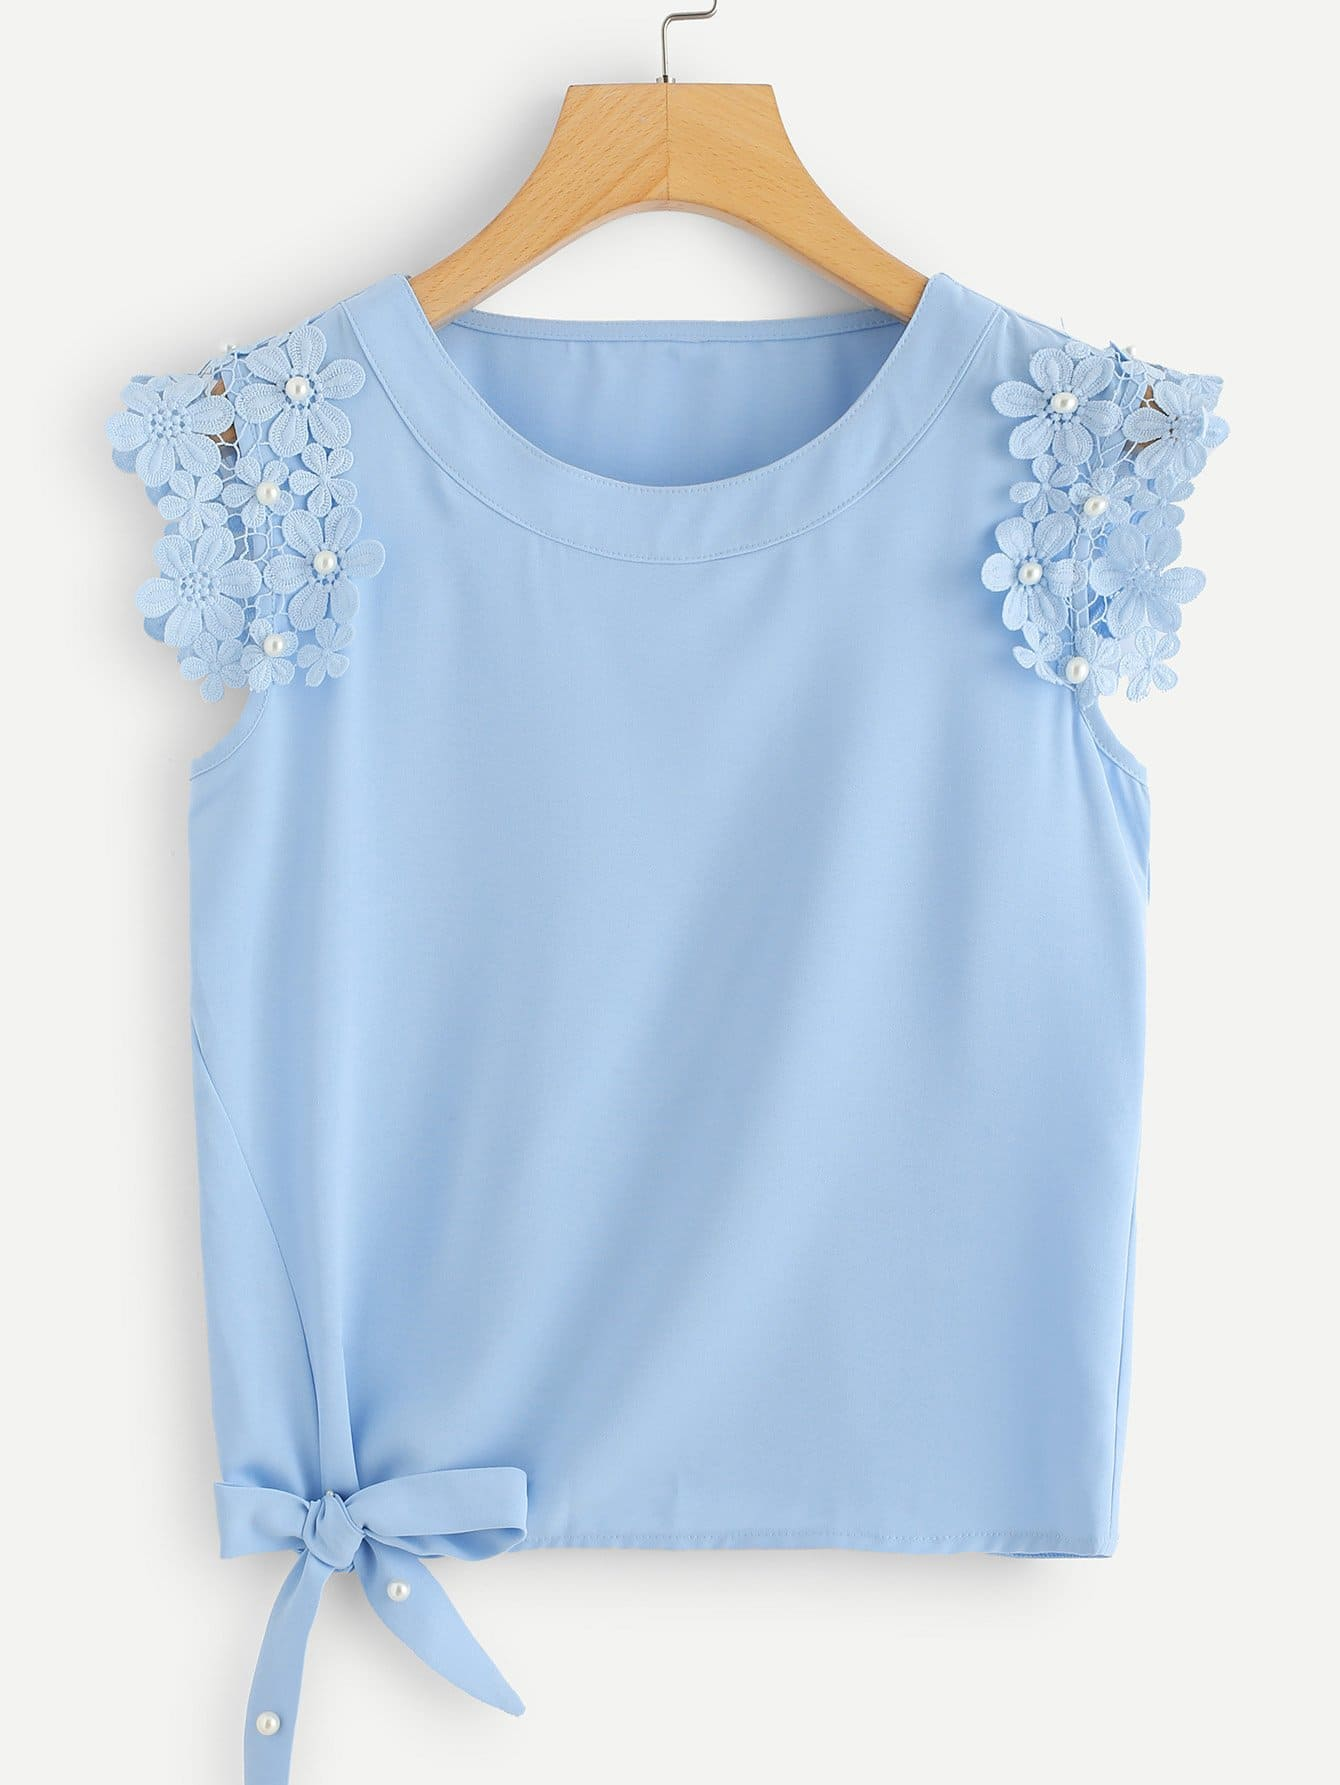 Knot Side Pearl Beaded Detail Top contrast mesh pearl beaded detail top